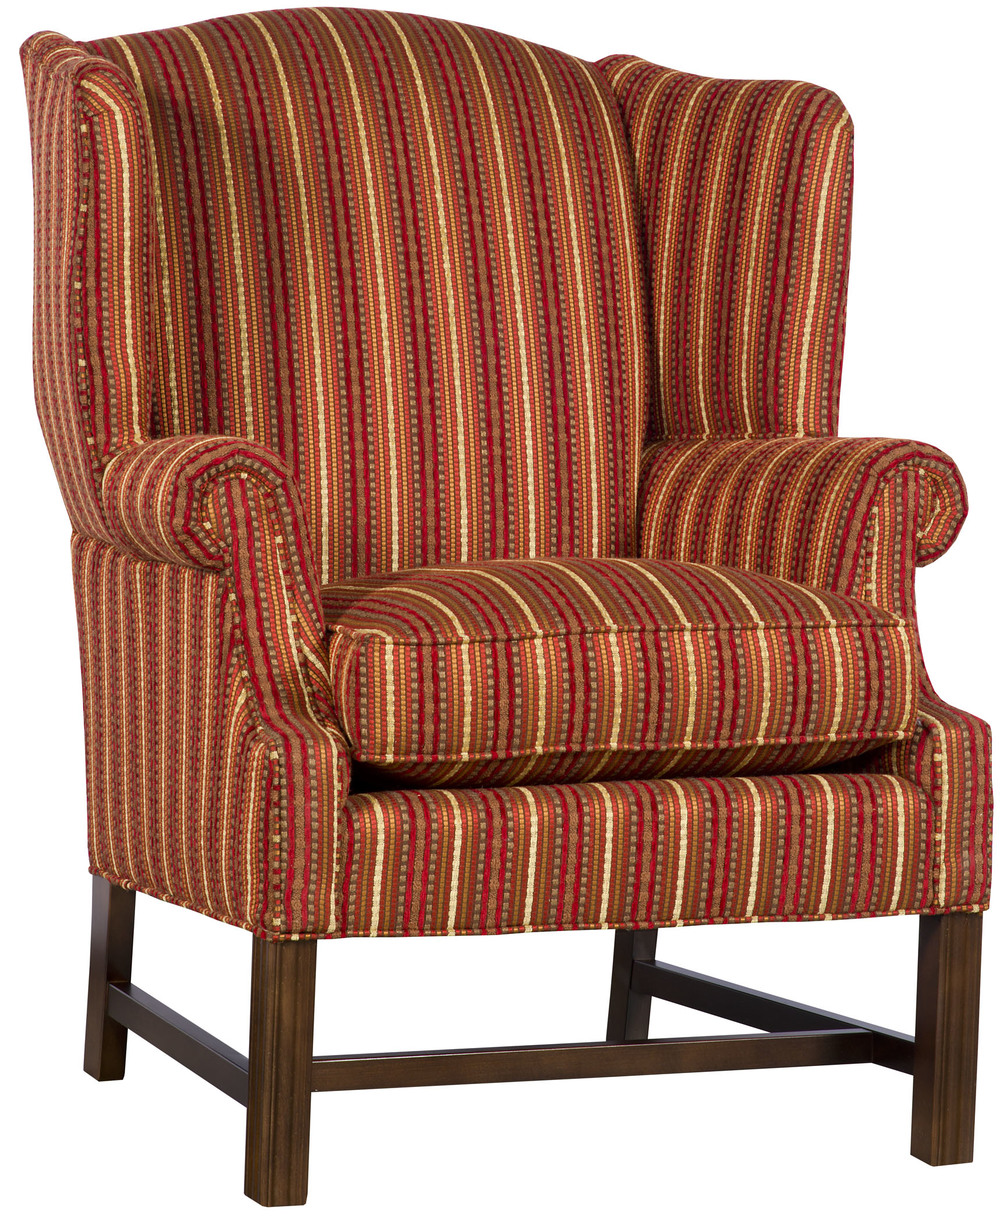 King Hickory - Gracie Chair